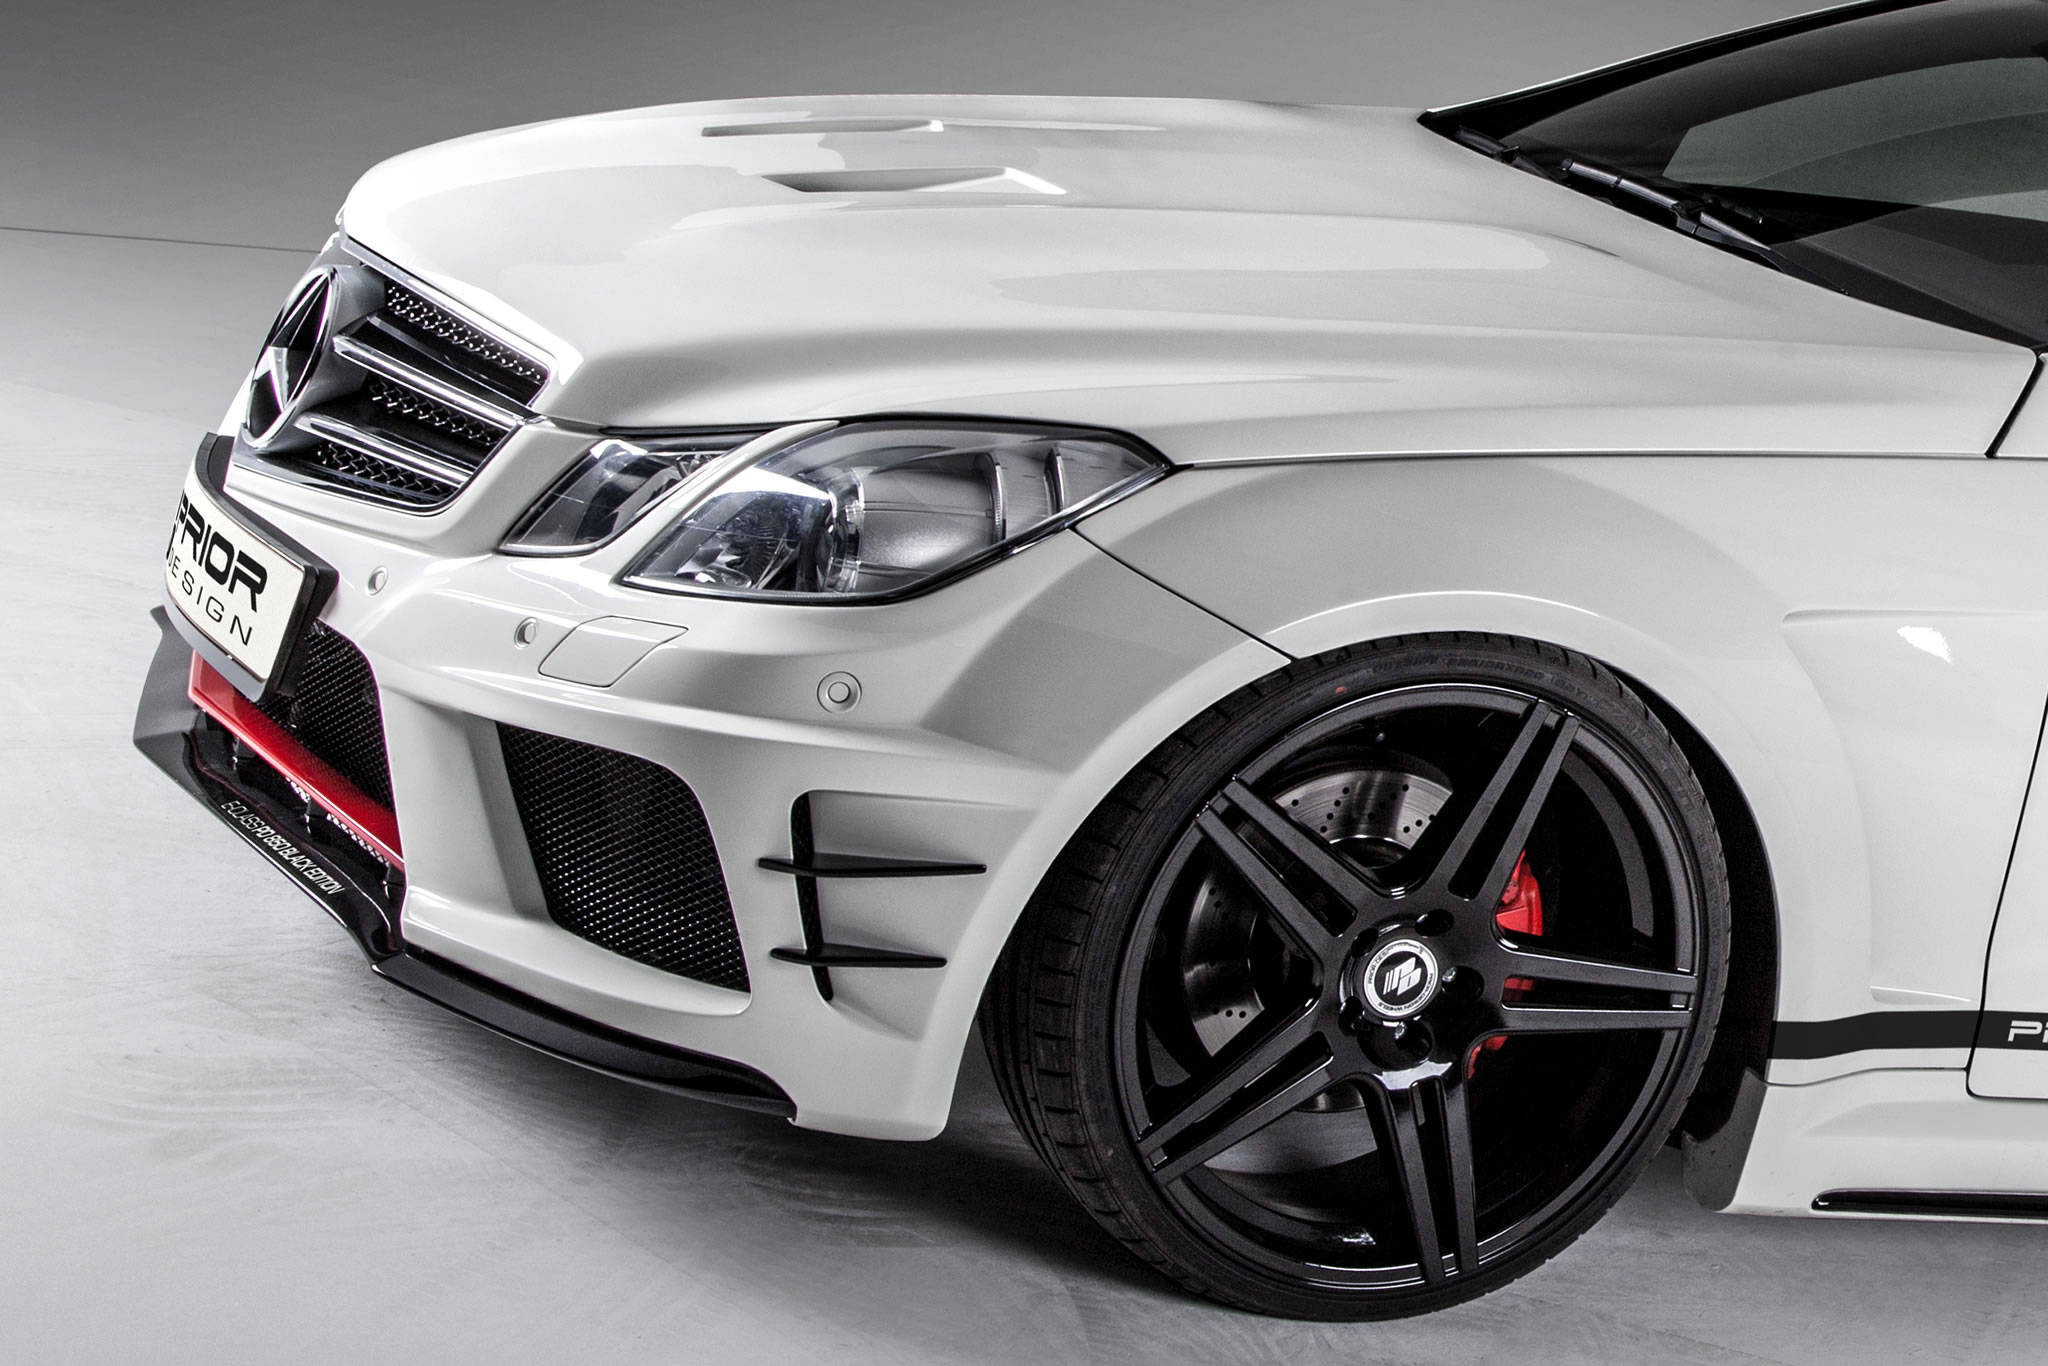 2013 mercedes benz e class coupe pd850 widebody by prior for Mercedes benz e350 tire size